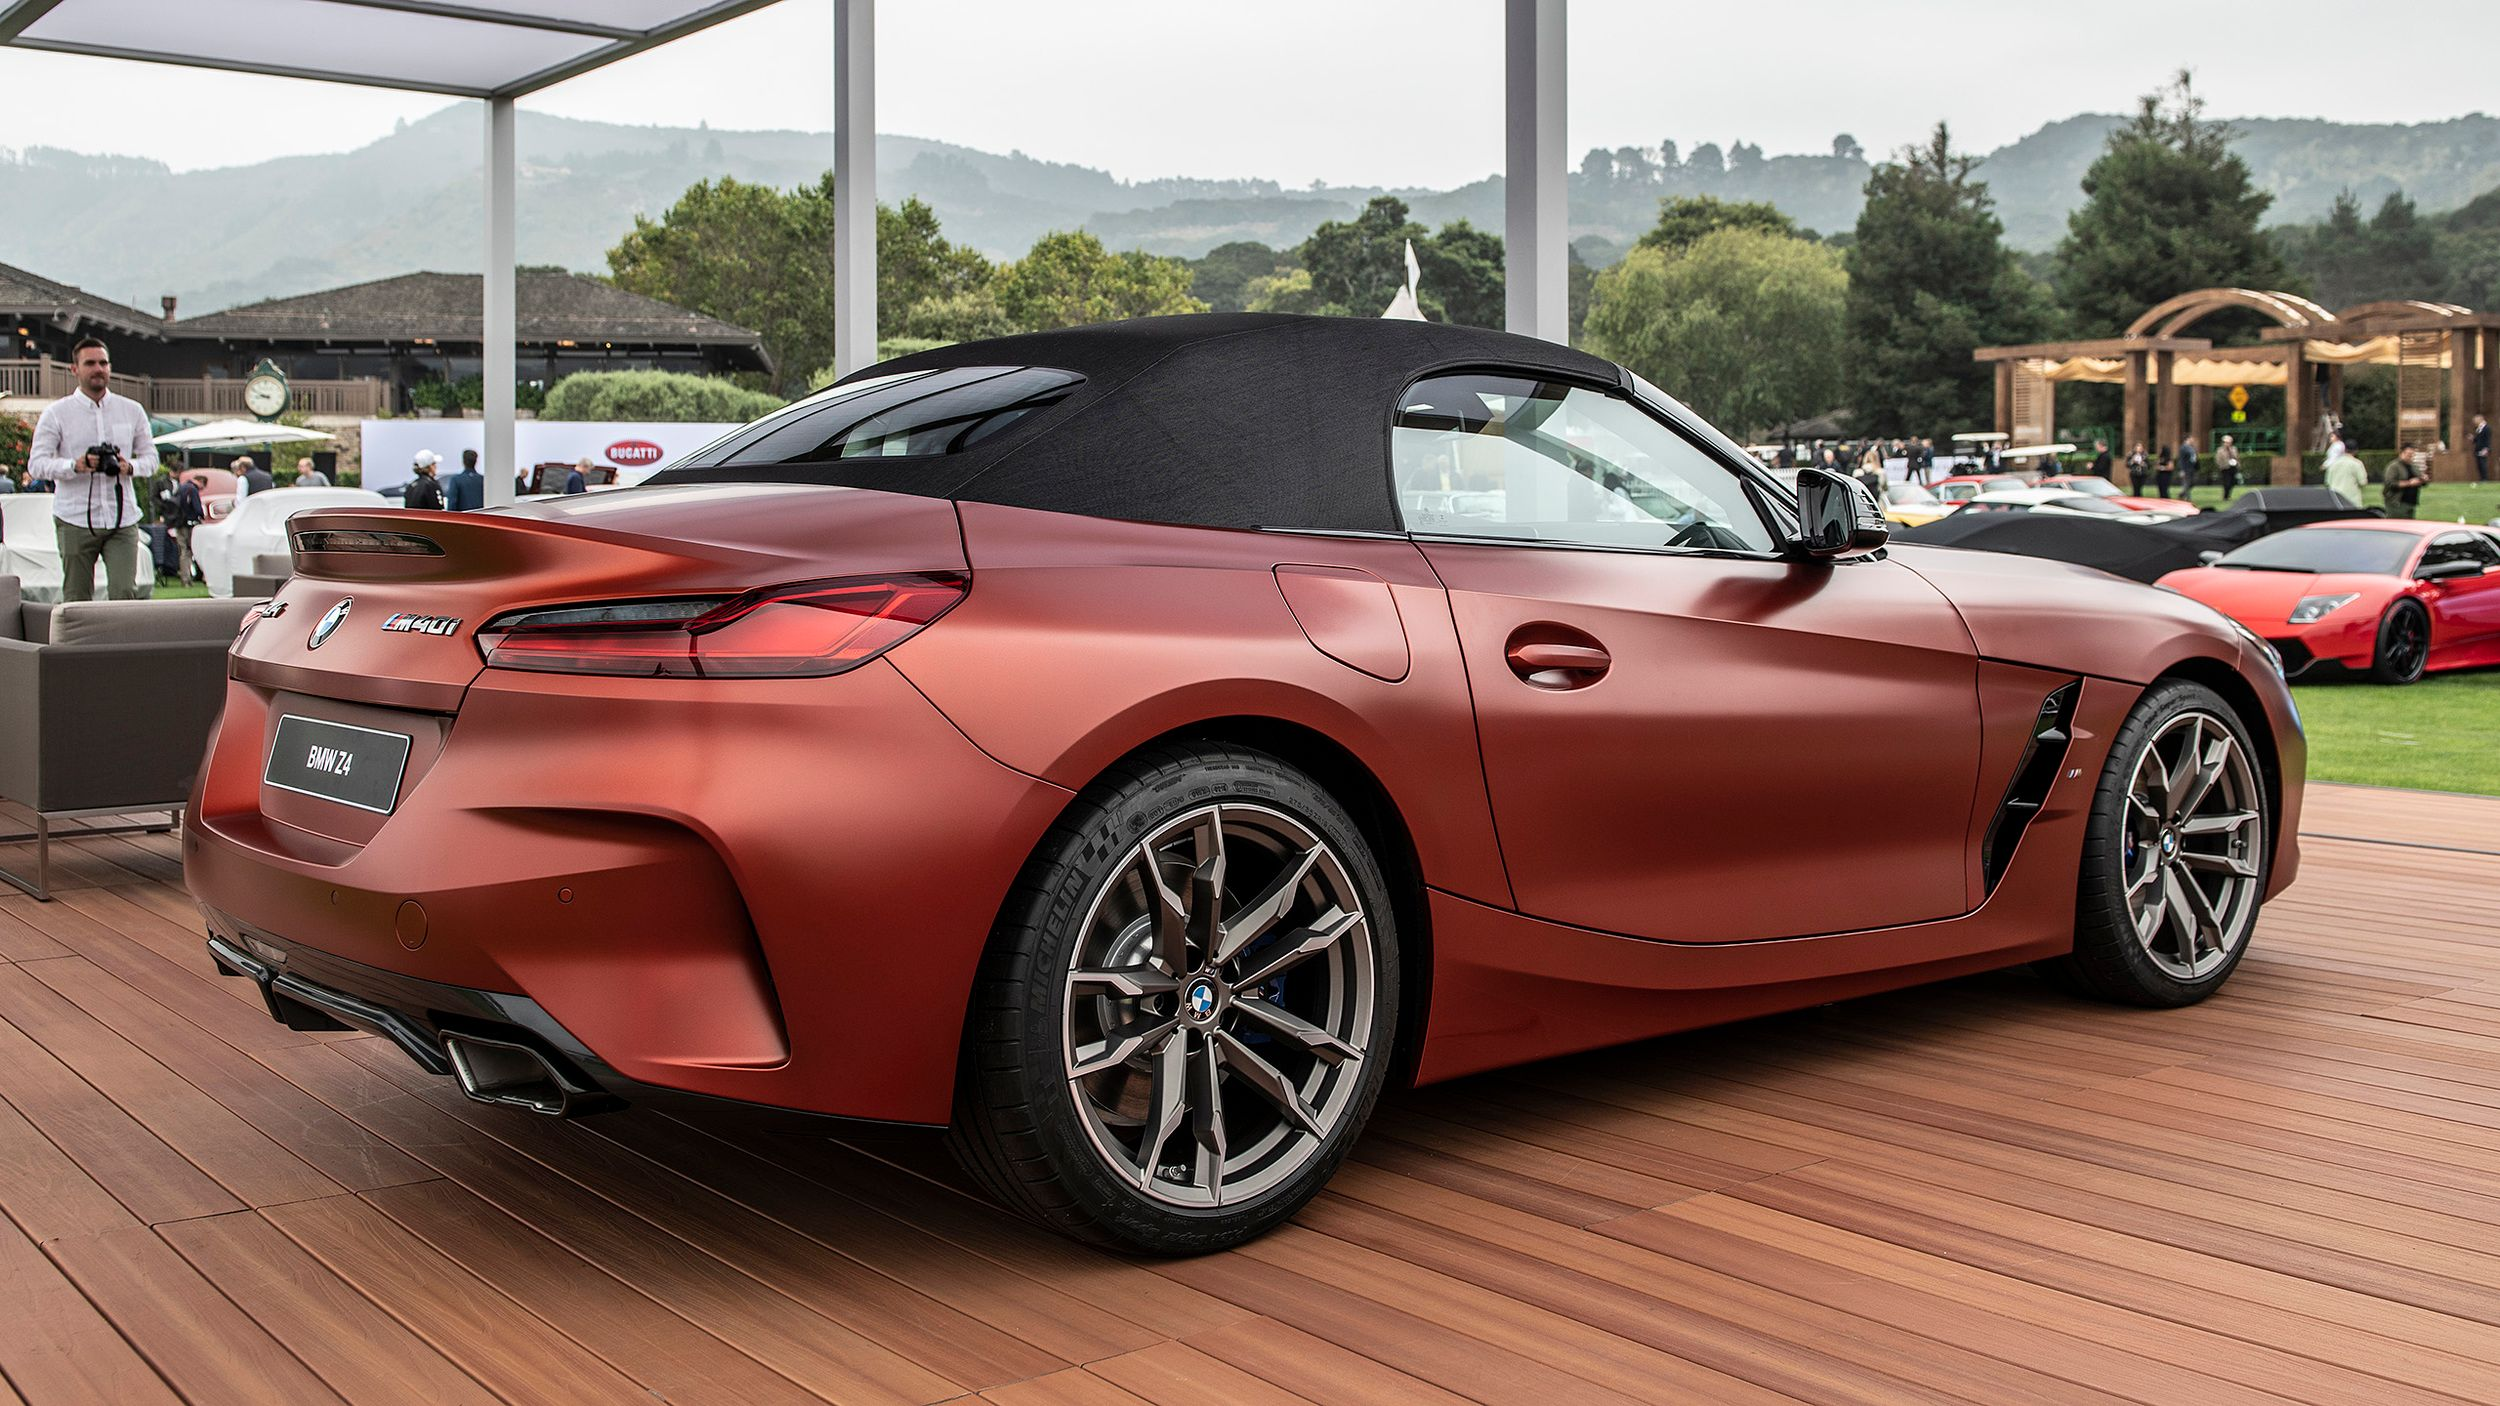 Bmw Z4 M40i Roadster First Edition показали в Пеббл Бич